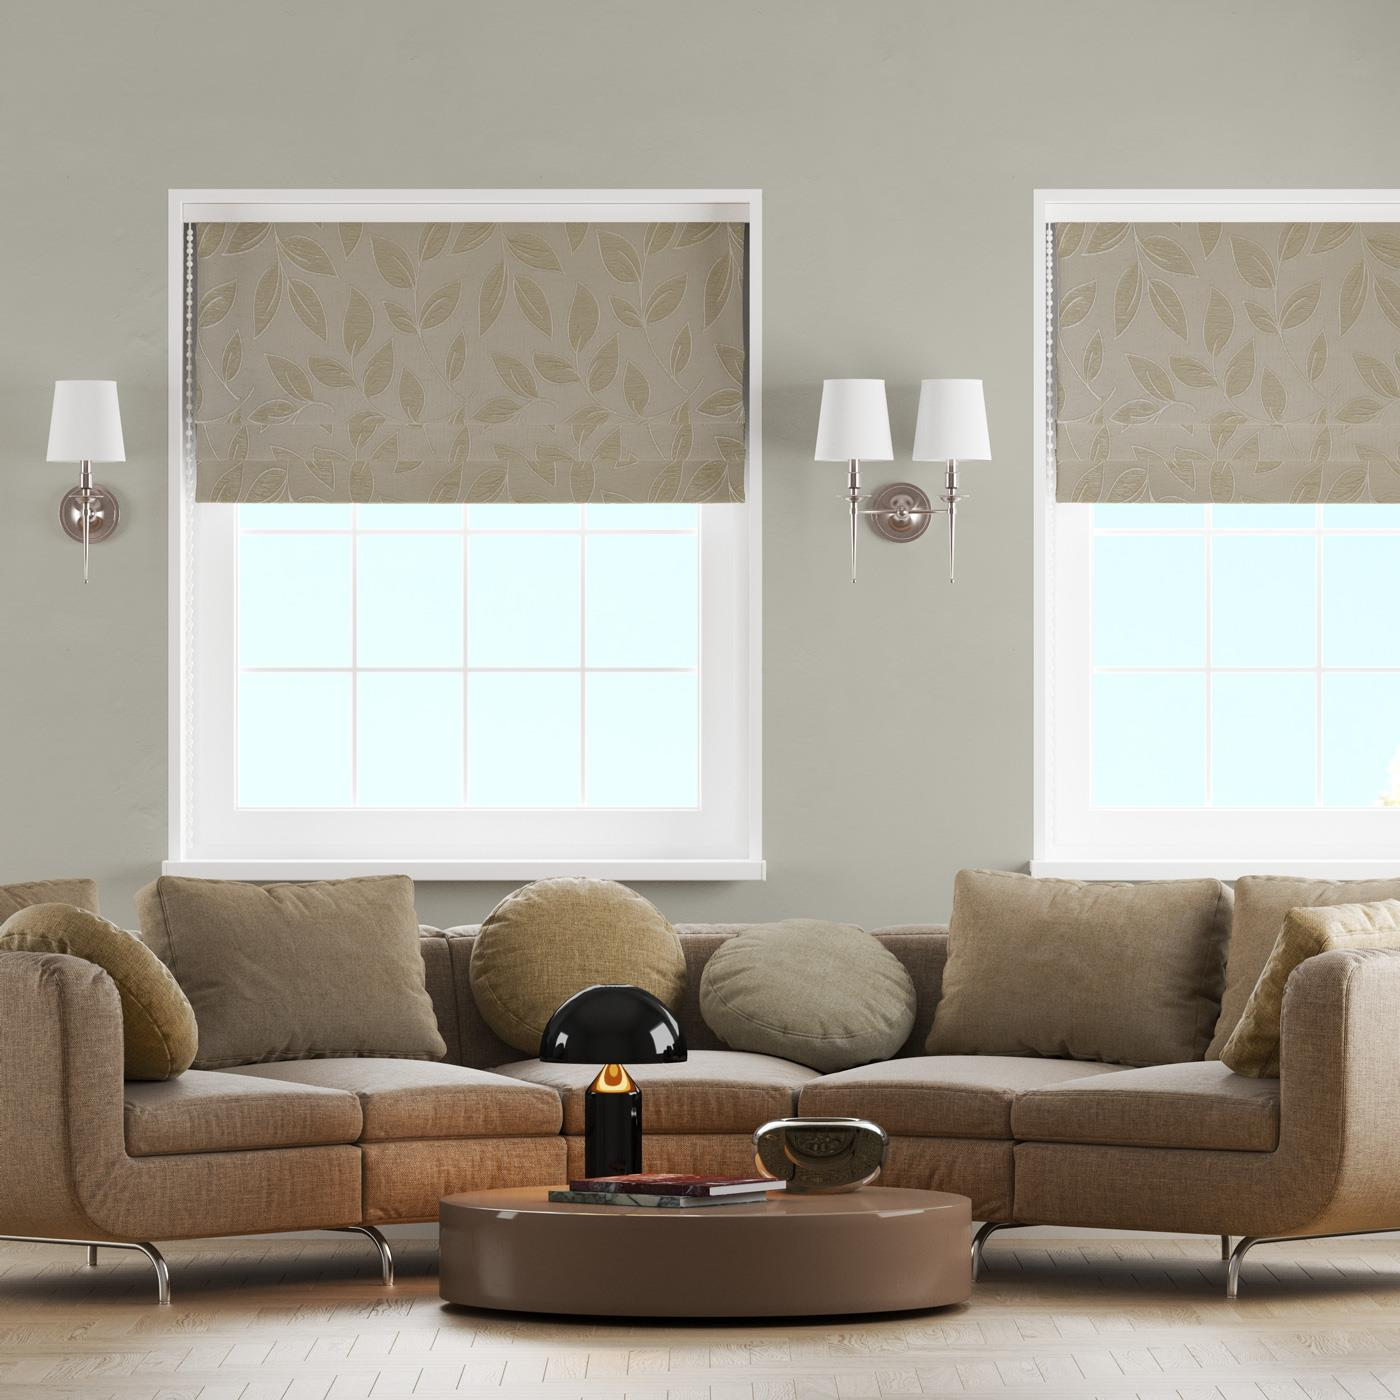 Paros Gold Made To Measure Roman Blind -  - Ideal Textiles